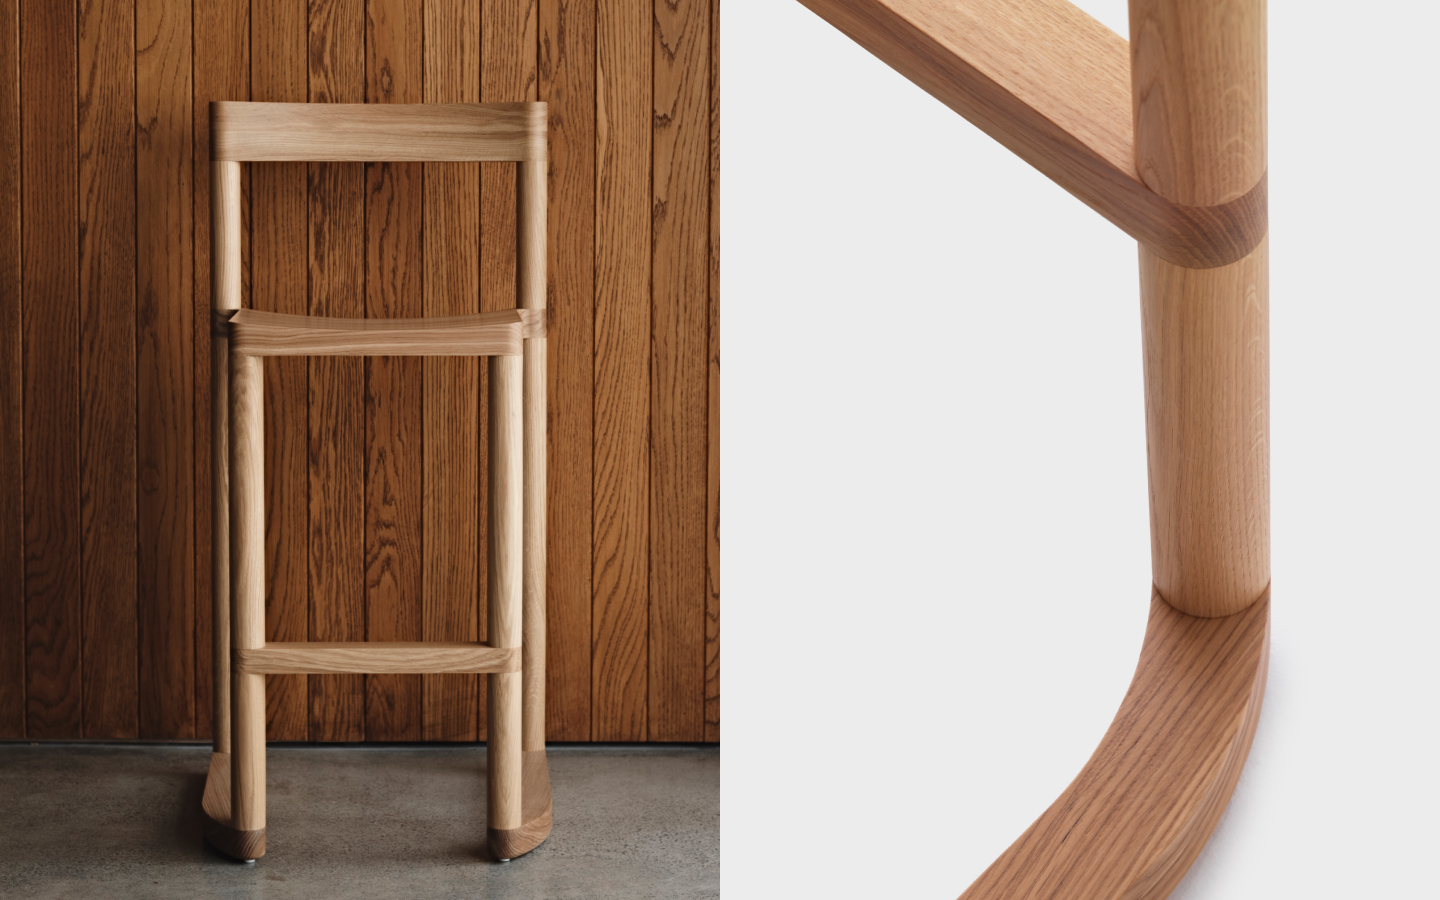 Wooden bar stool with tubular legs and curved feet